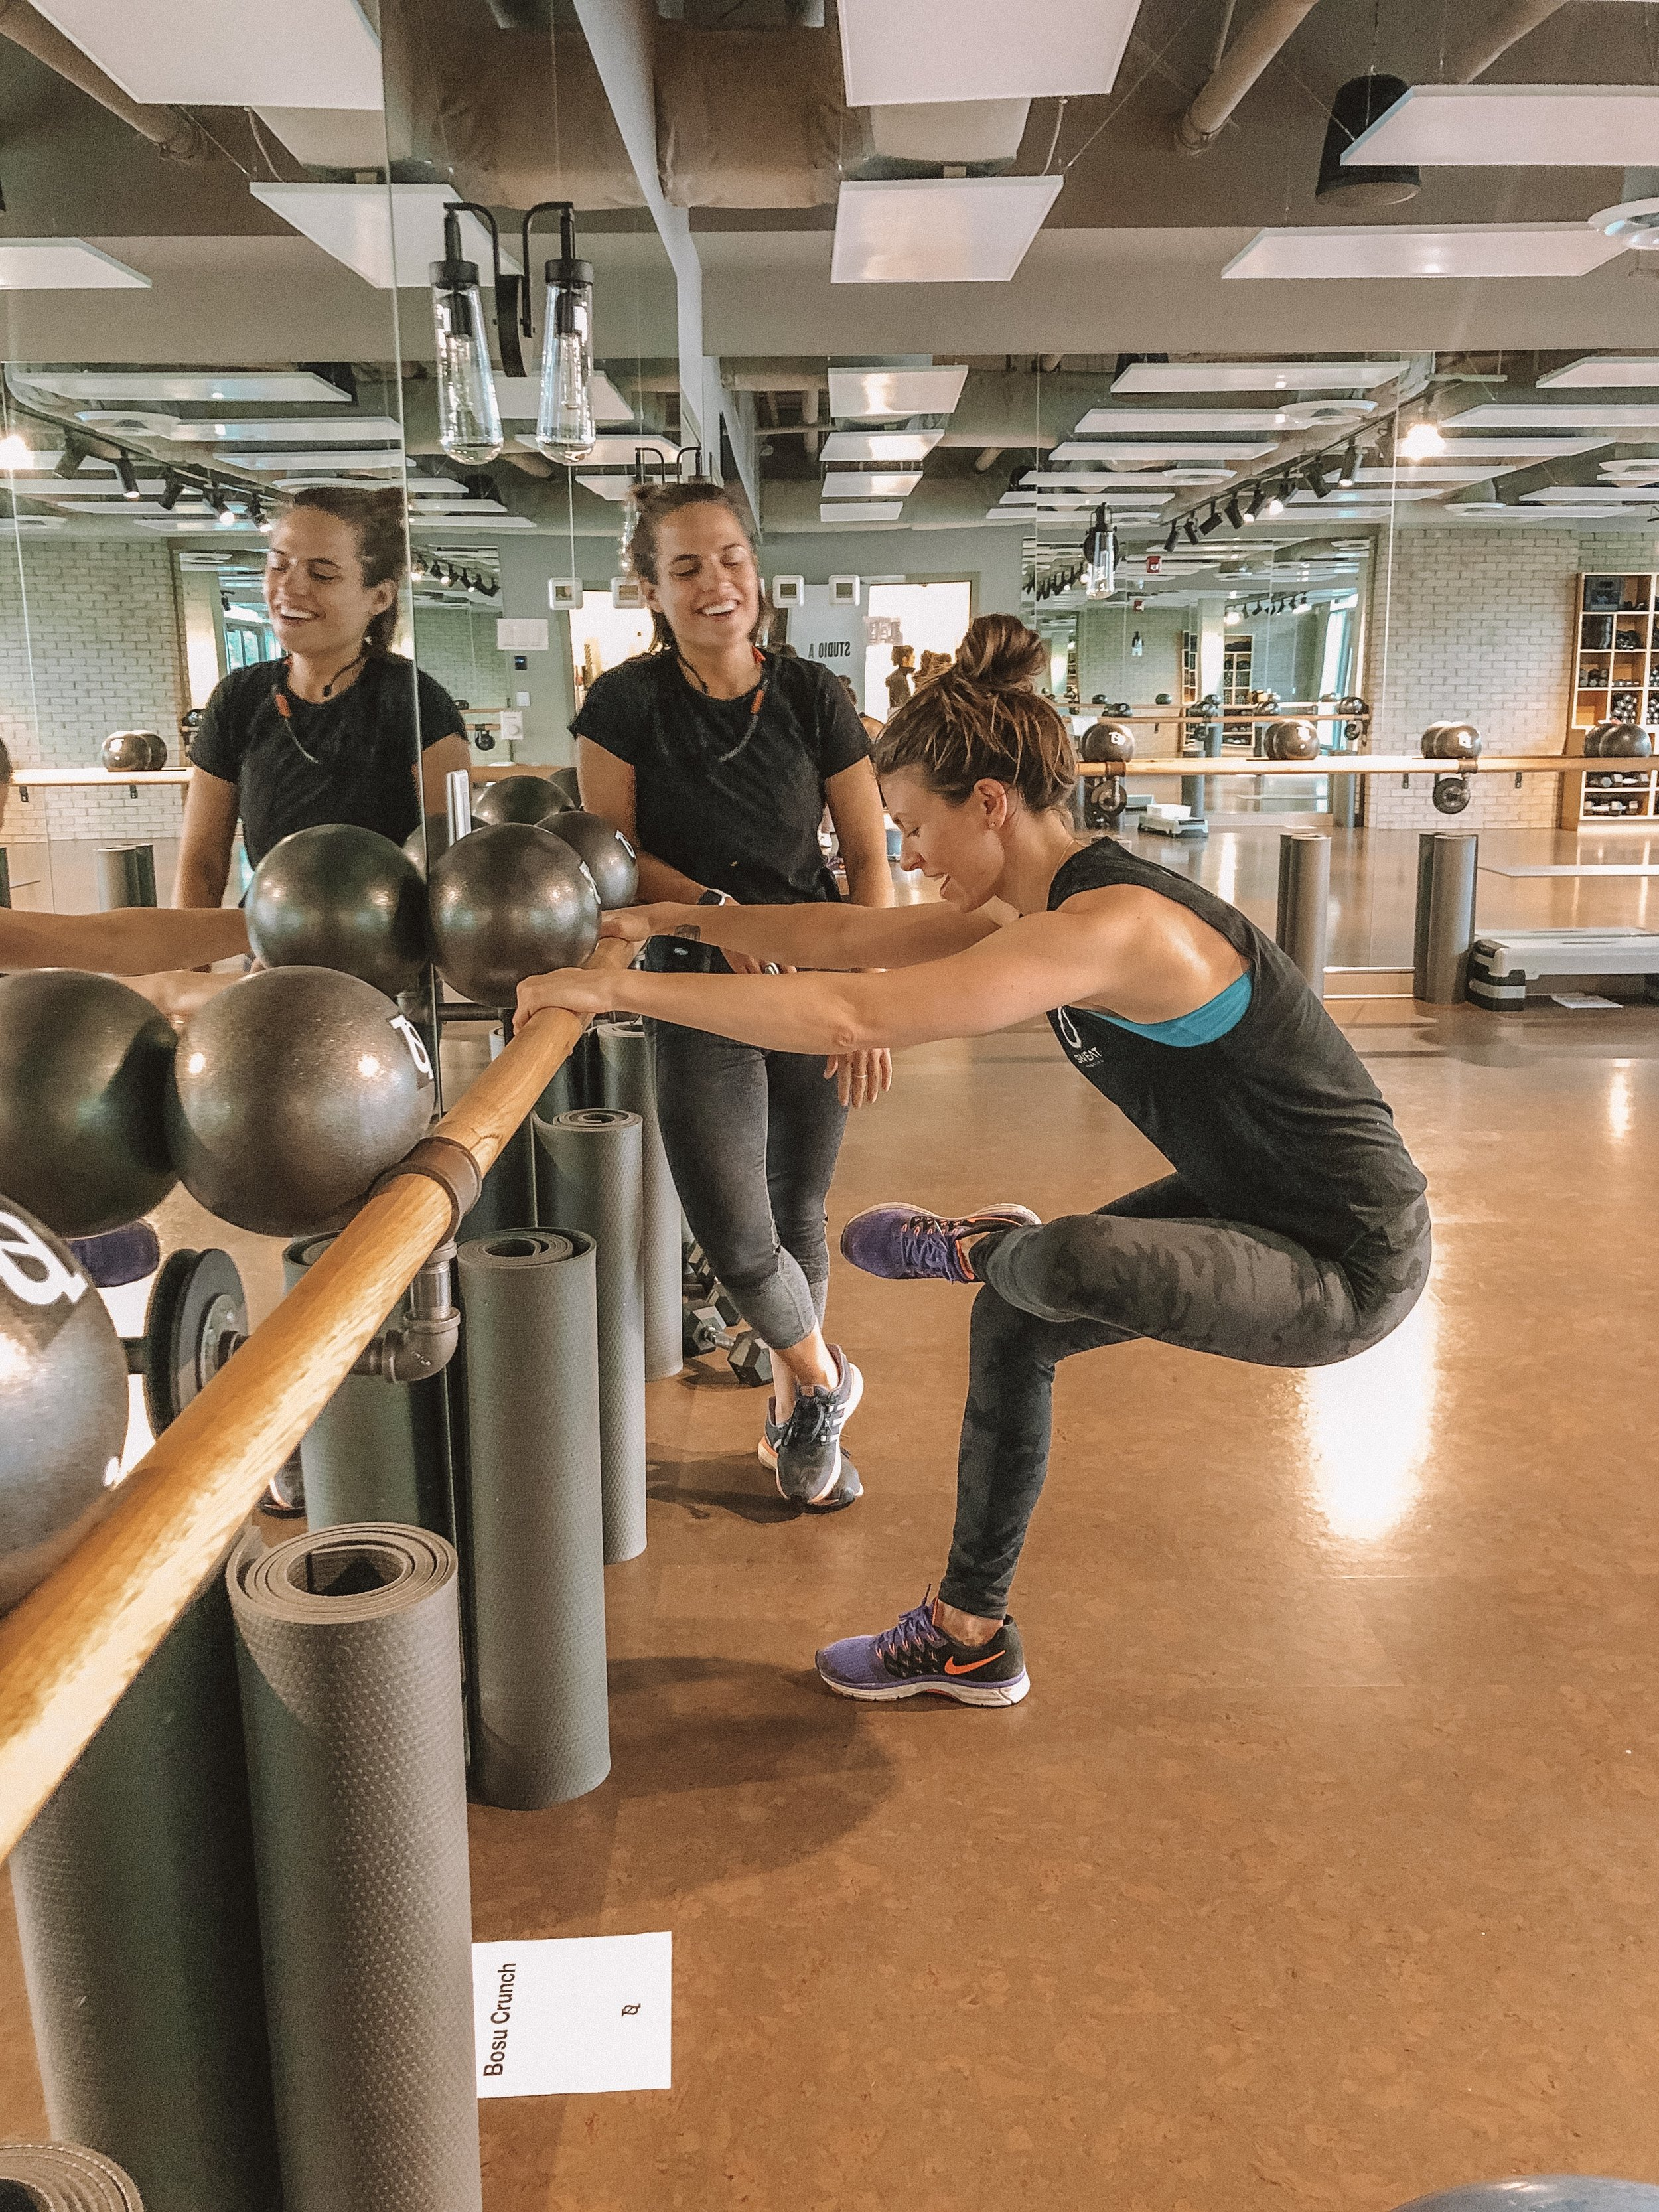 Building muscle at The Sweat Lab in North Vancouver